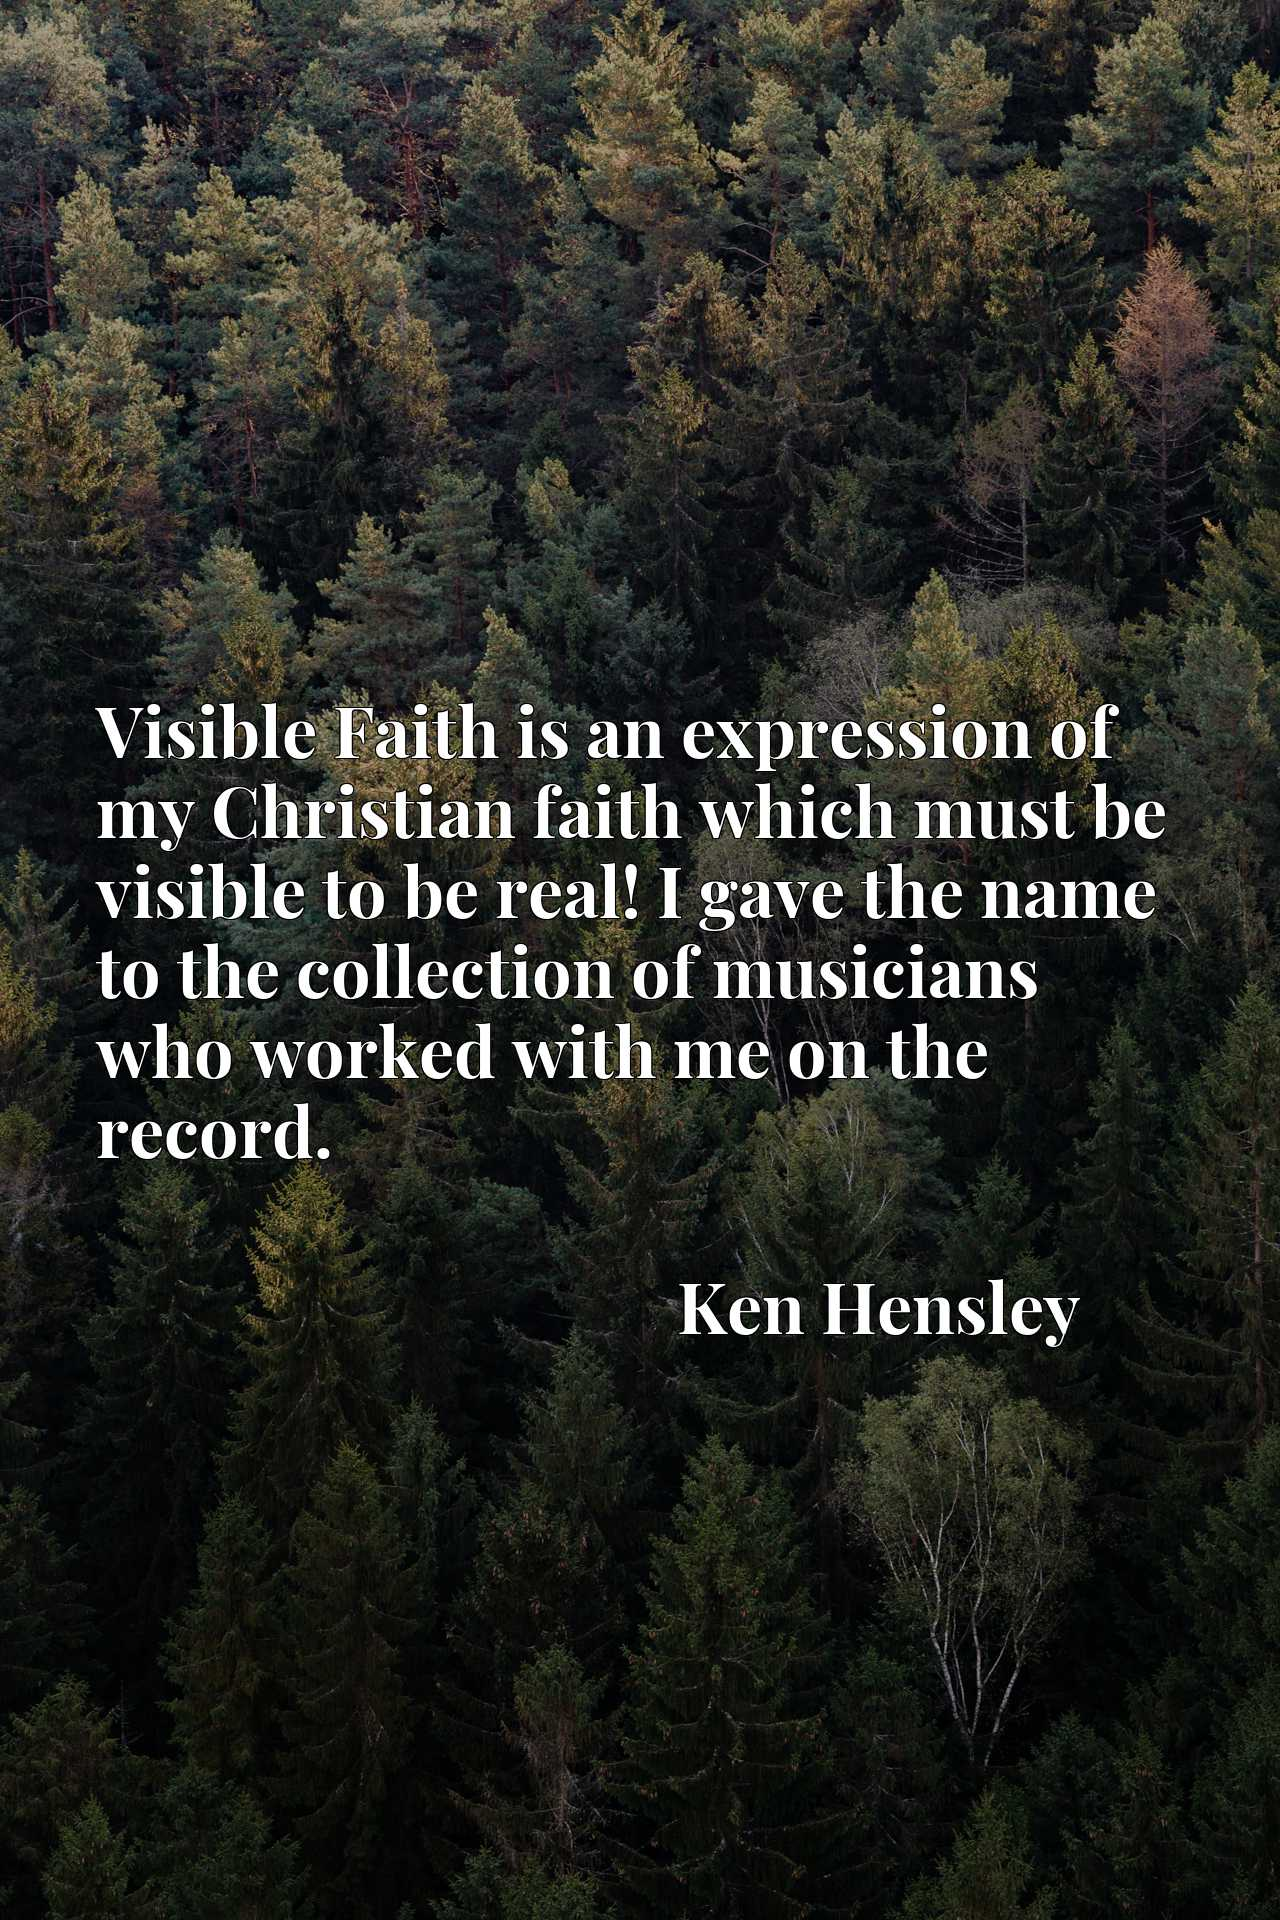 Visible Faith is an expression of my Christian faith which must be visible to be real! I gave the name to the collection of musicians who worked with me on the record.